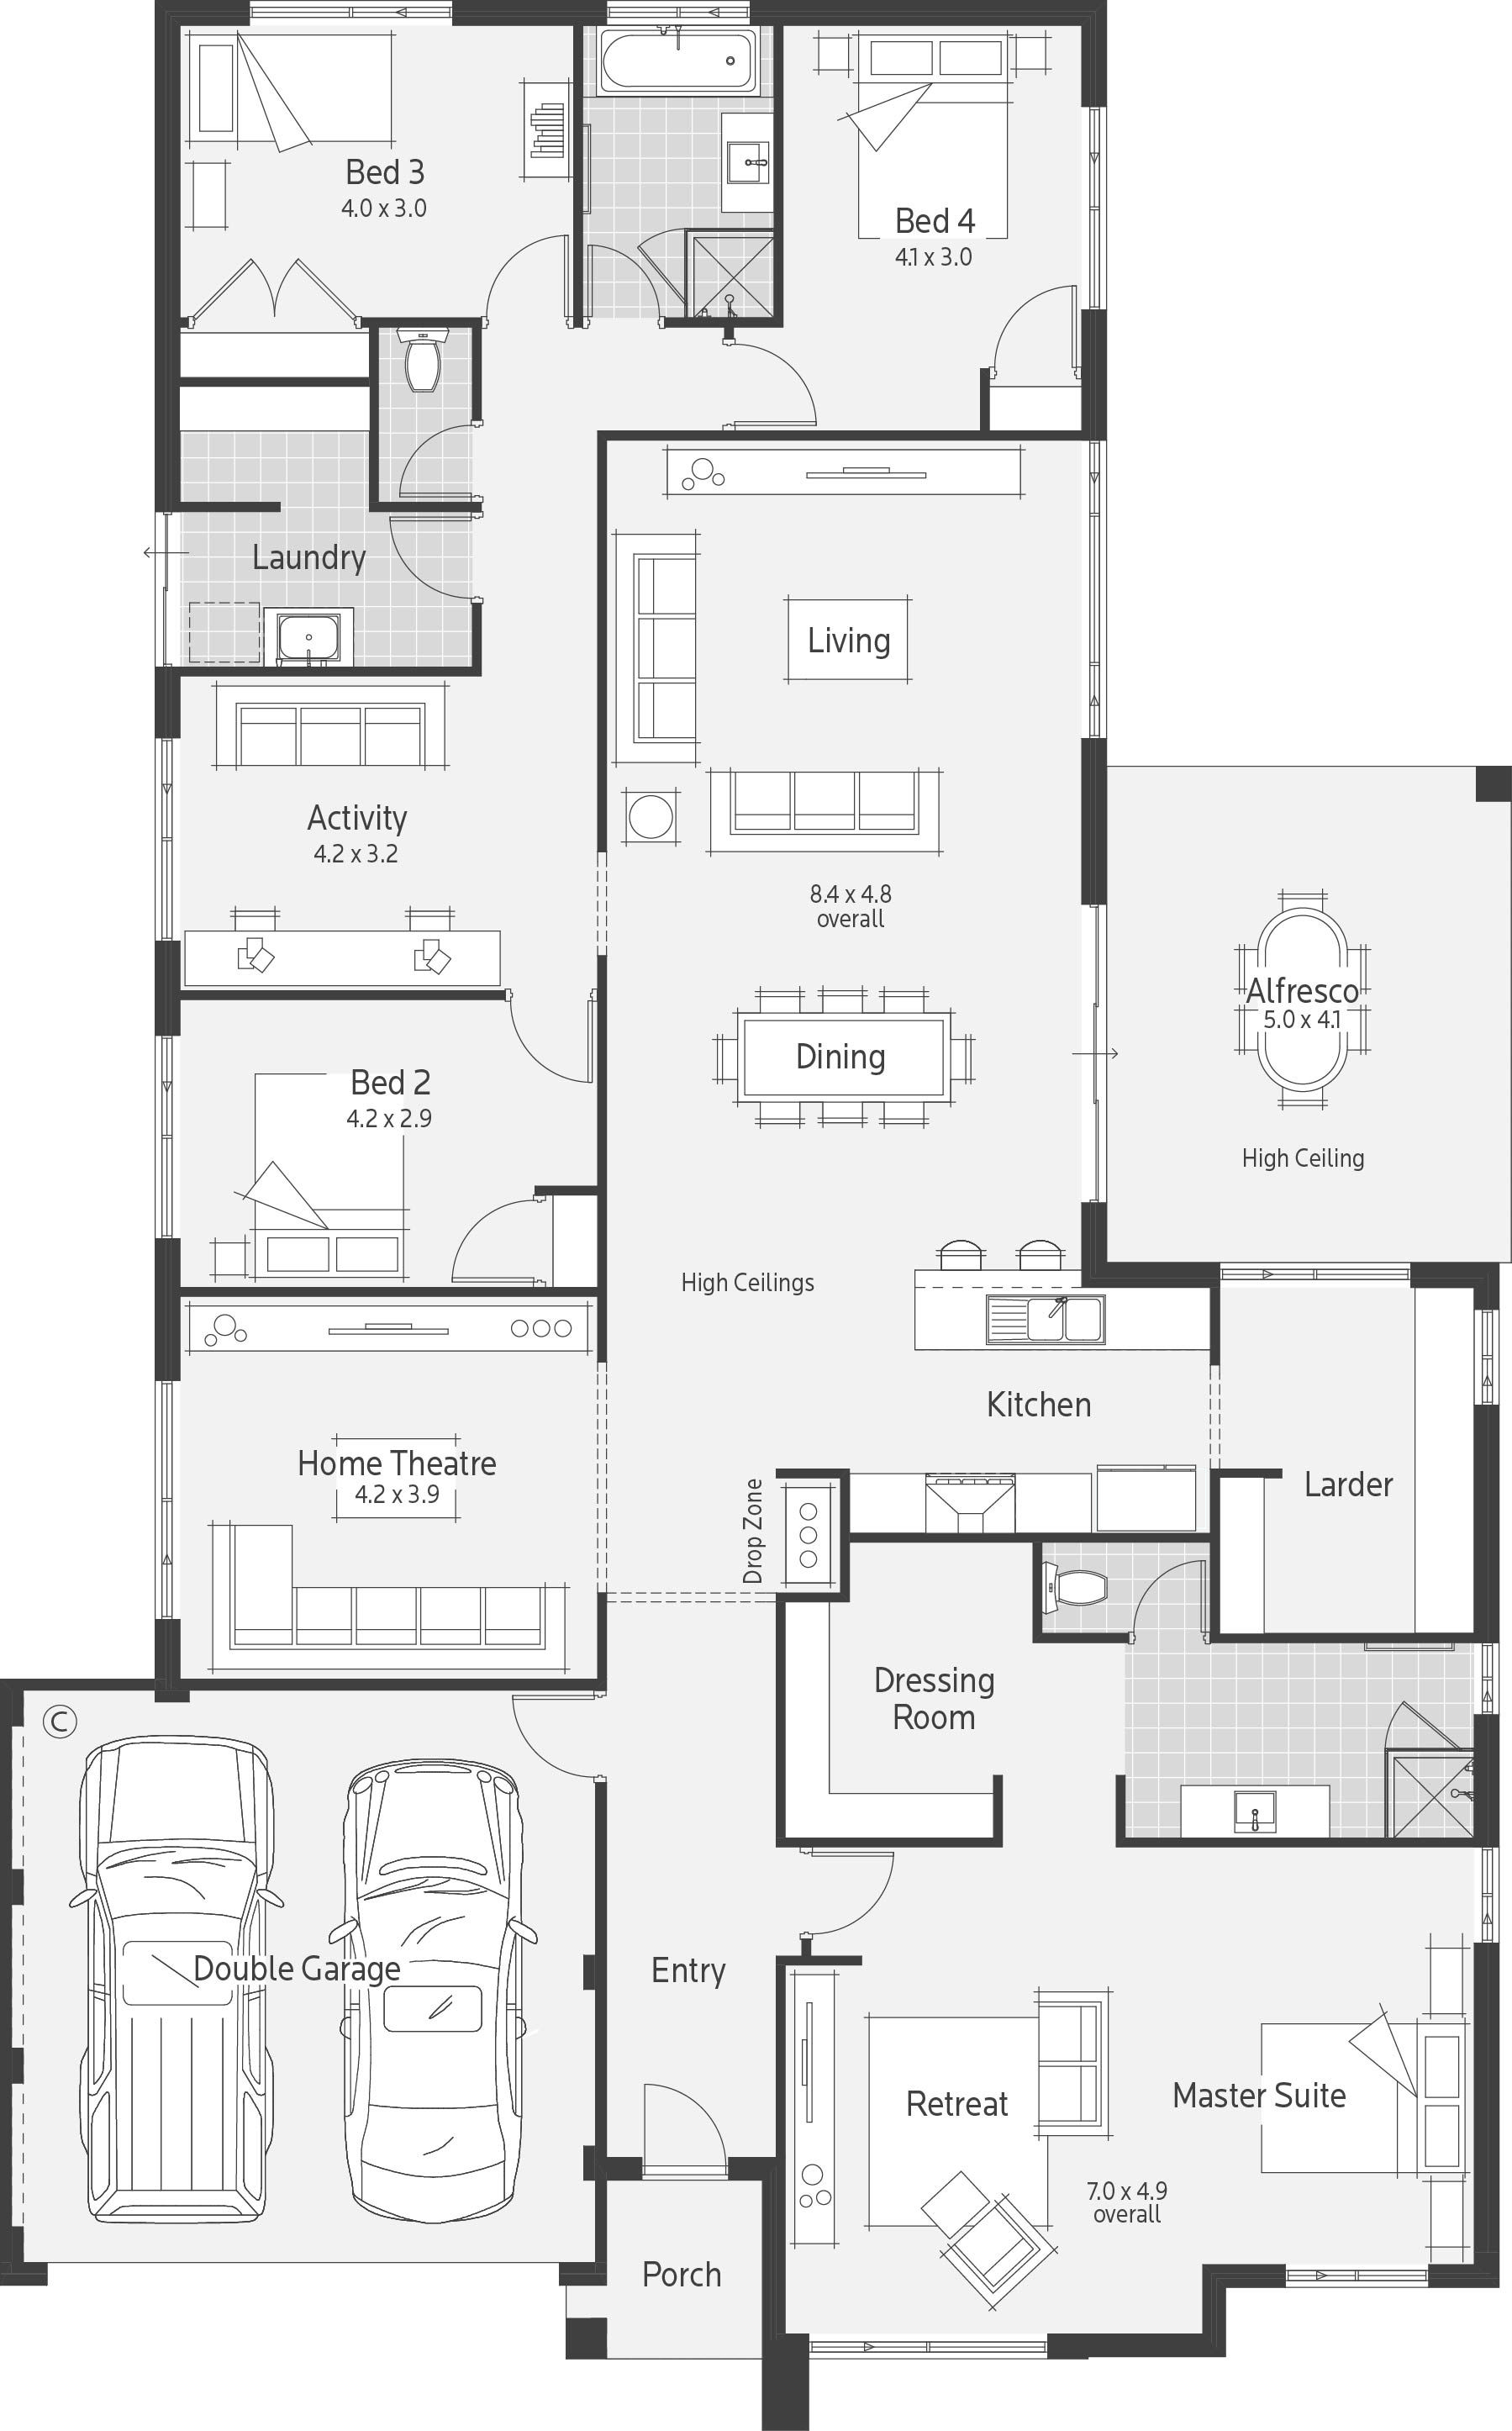 Pin By Mariah Smyth On Investment Property Floor Plan Design Kitchen Floor Plans House Plans